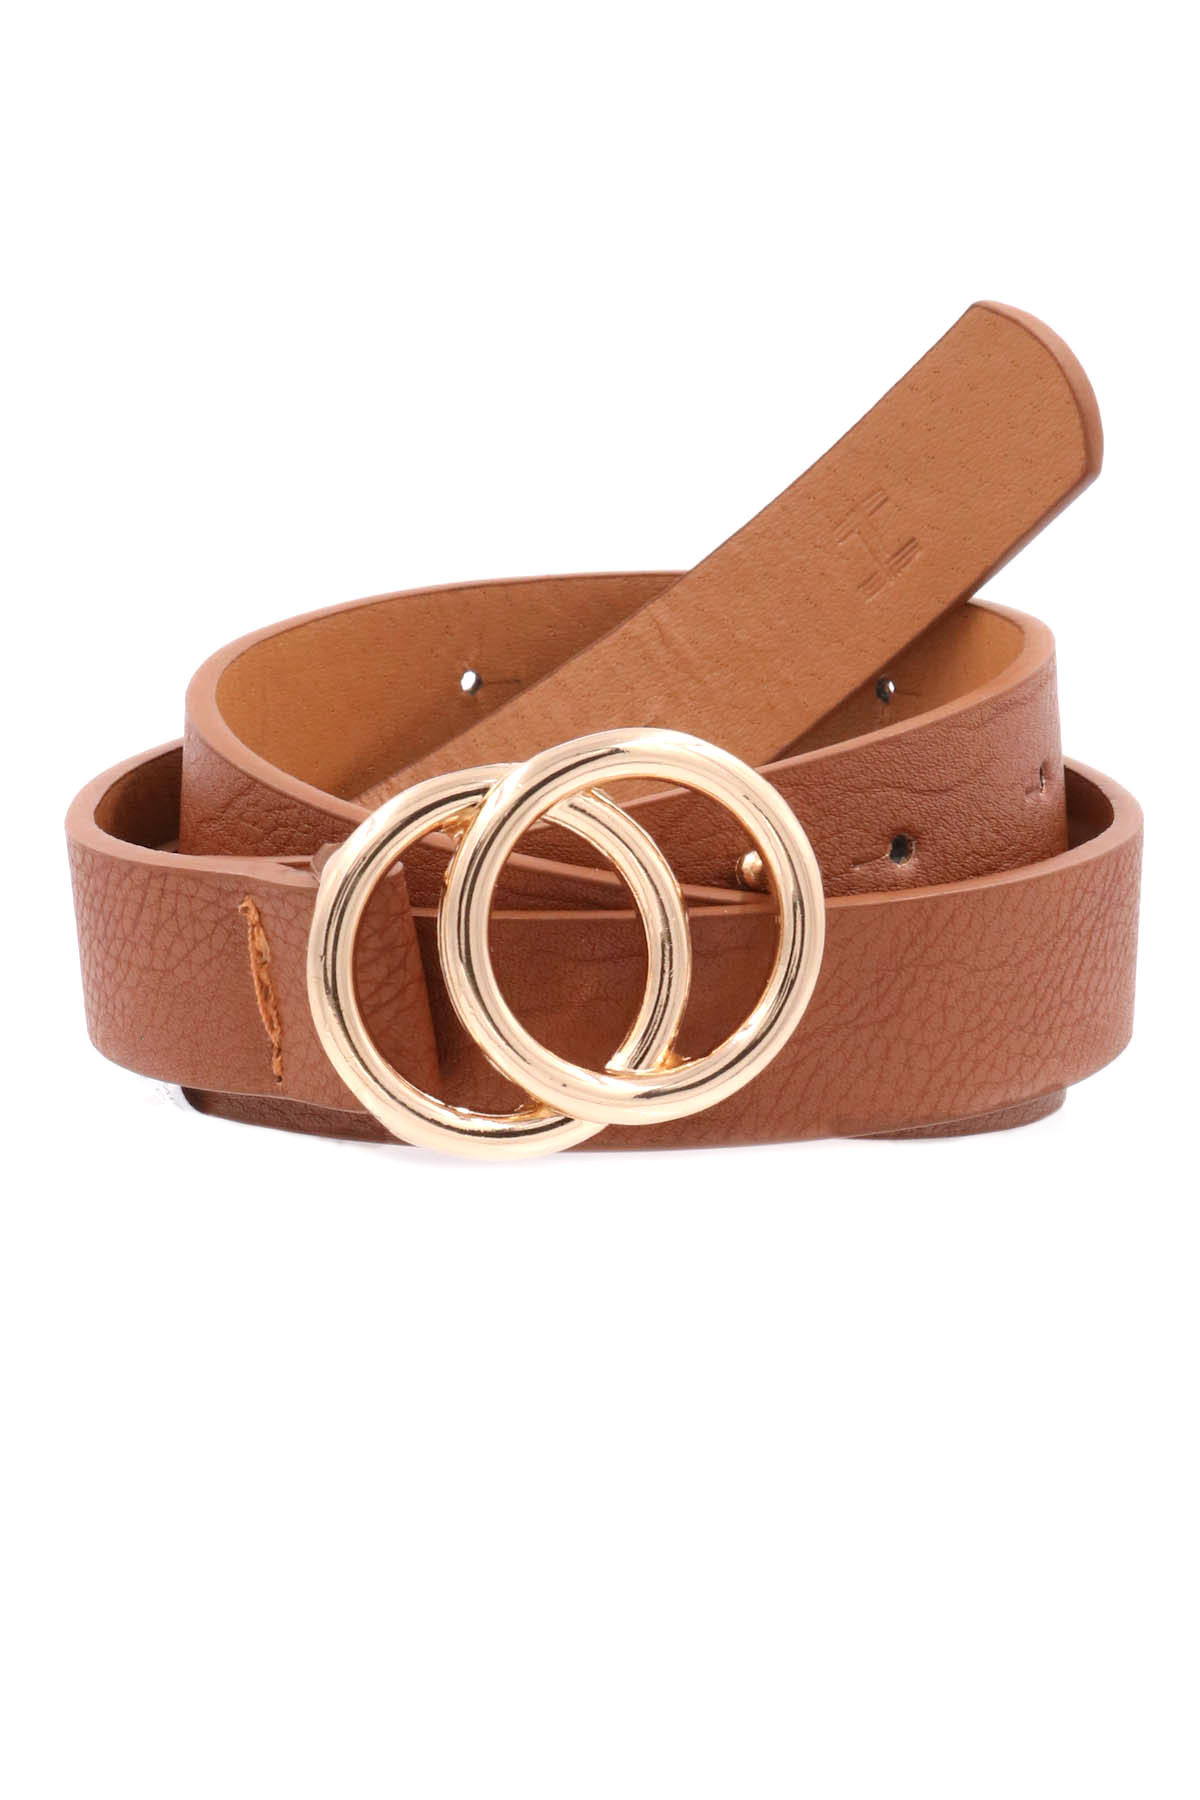 Double O Ring Buckle Belt - Belts